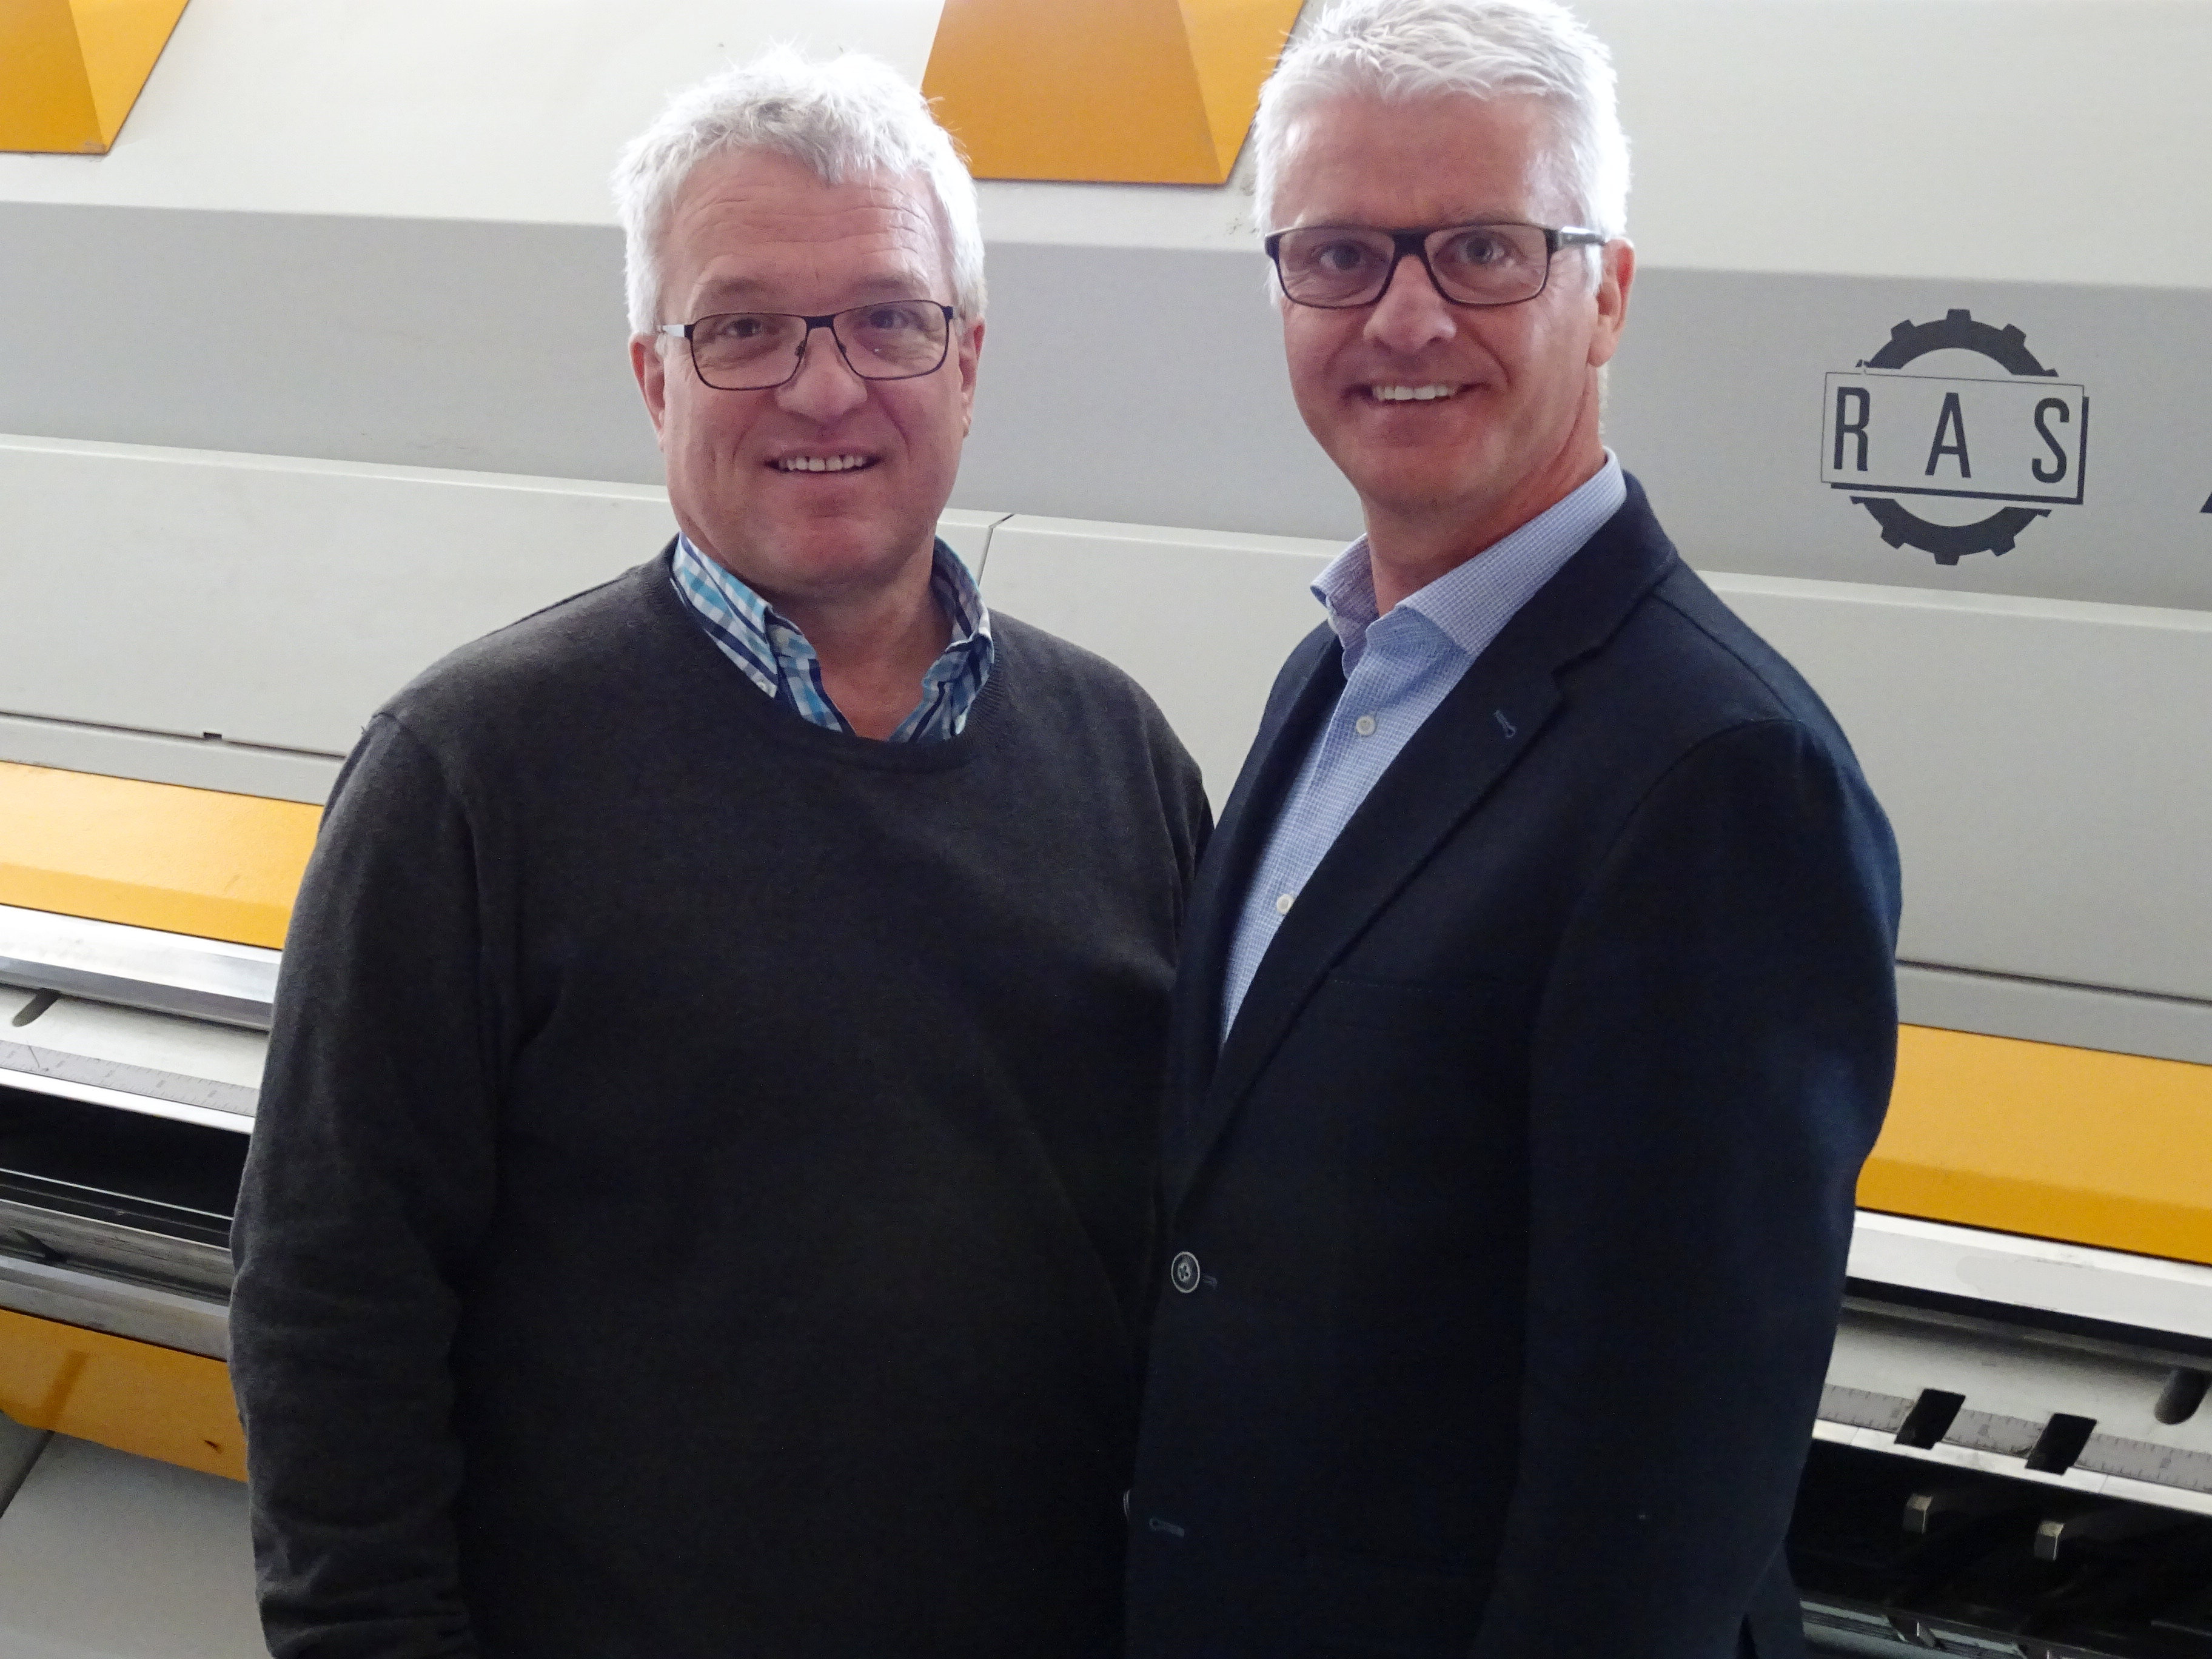 Manfred Baldauf together with RAS CEO Willy Stahl in front of the XL-Center